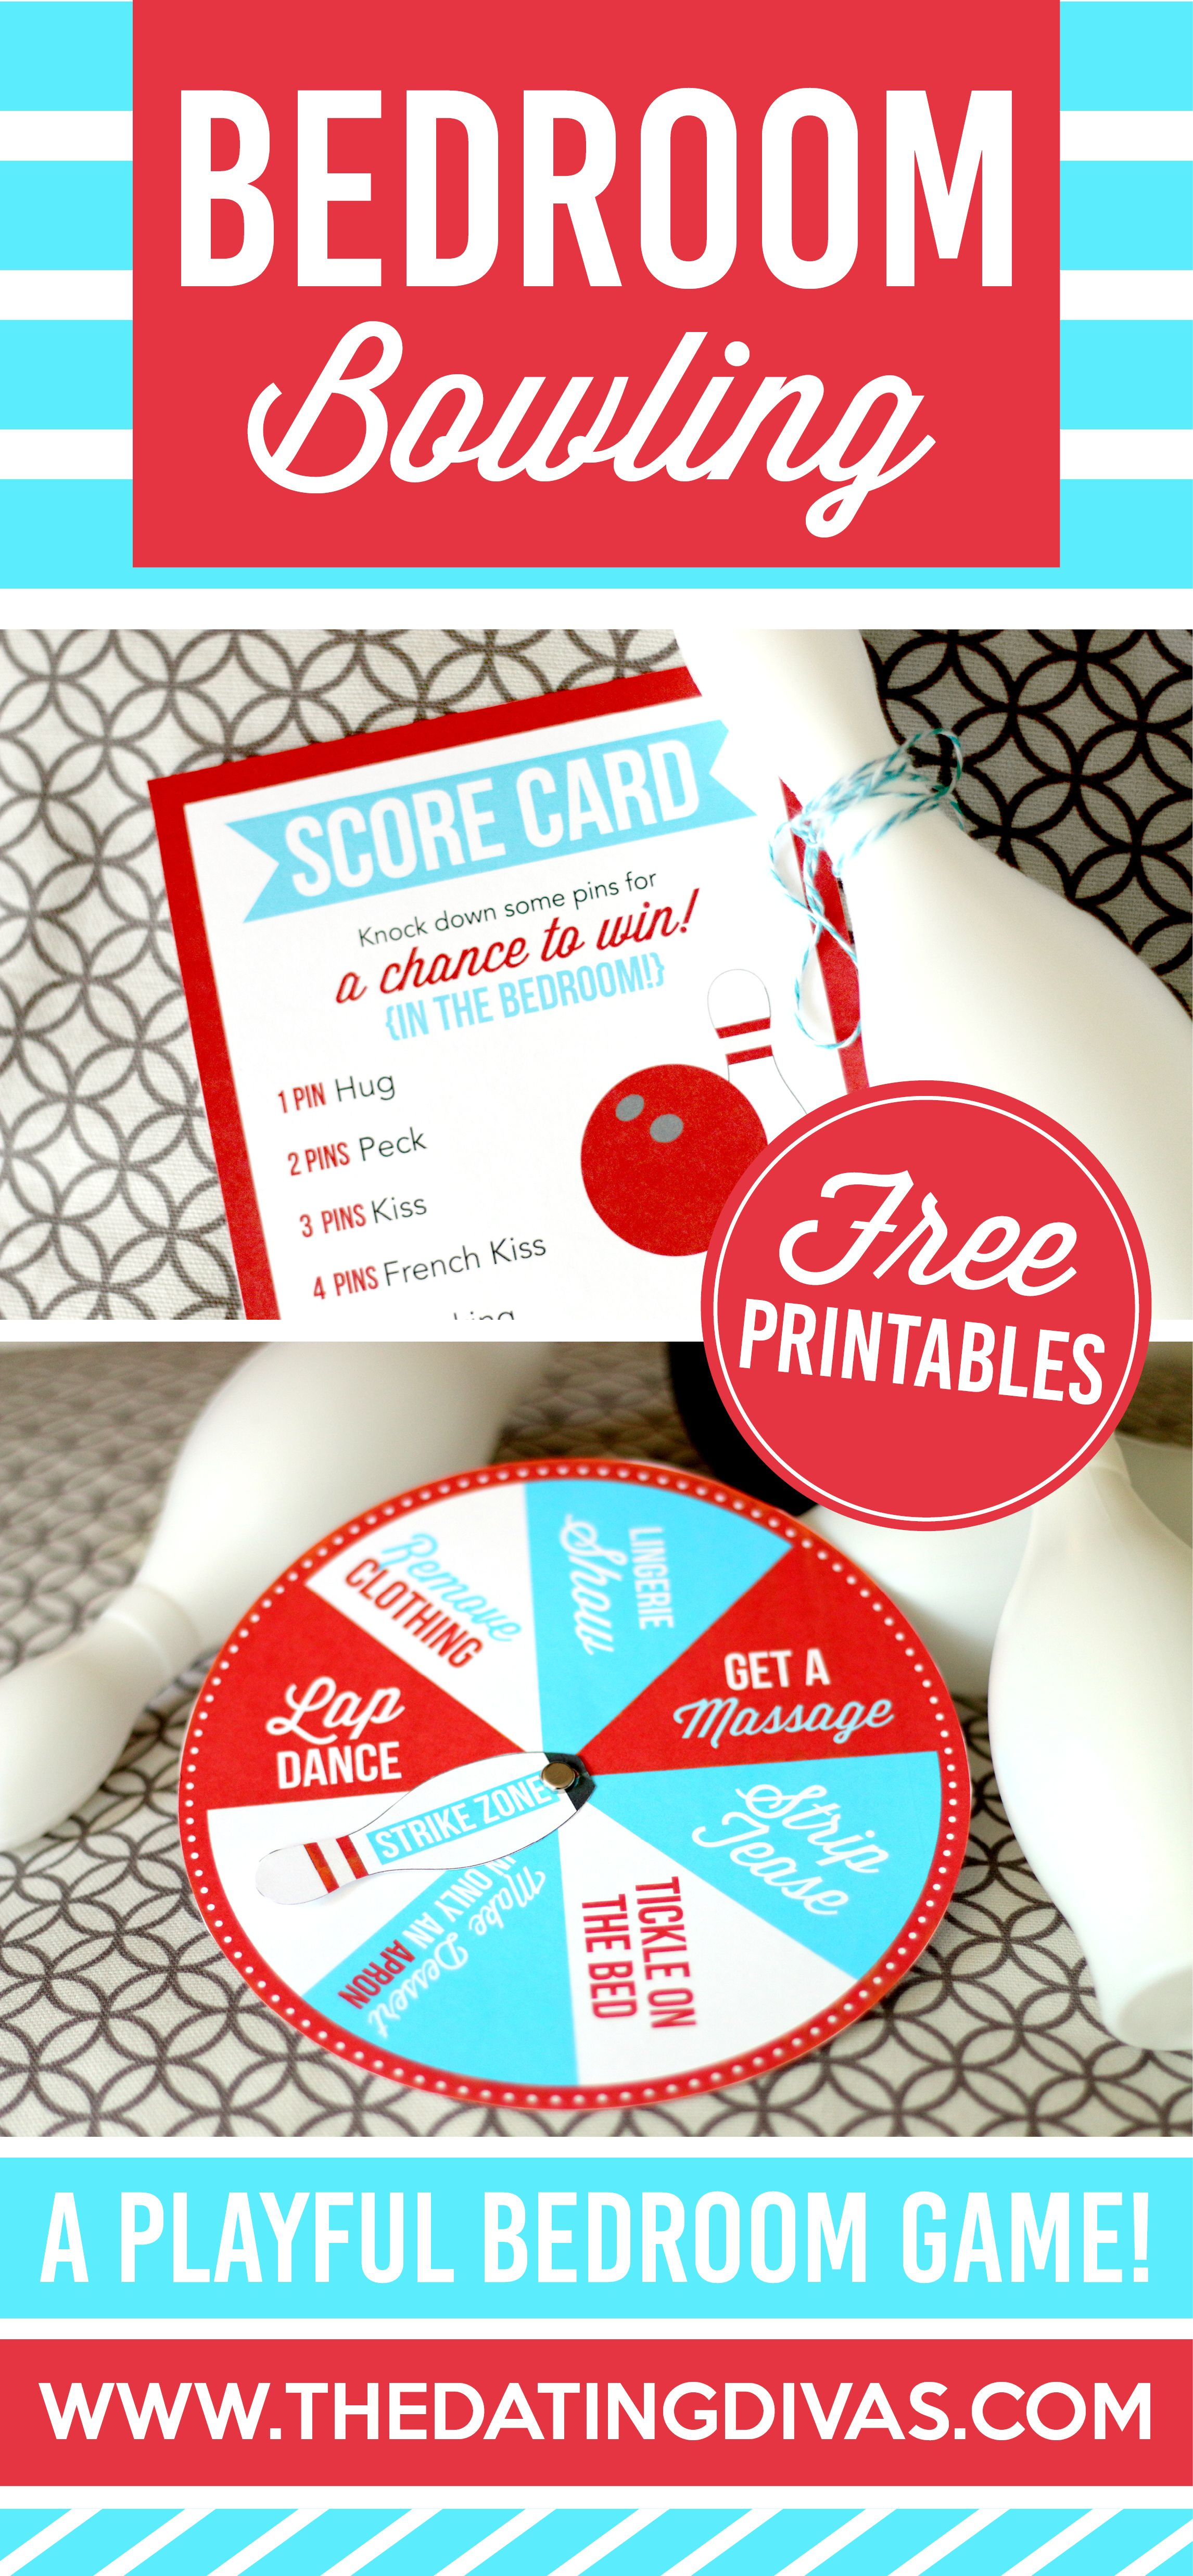 Bedroom Bowling Bedrooms Gift And Free Printables